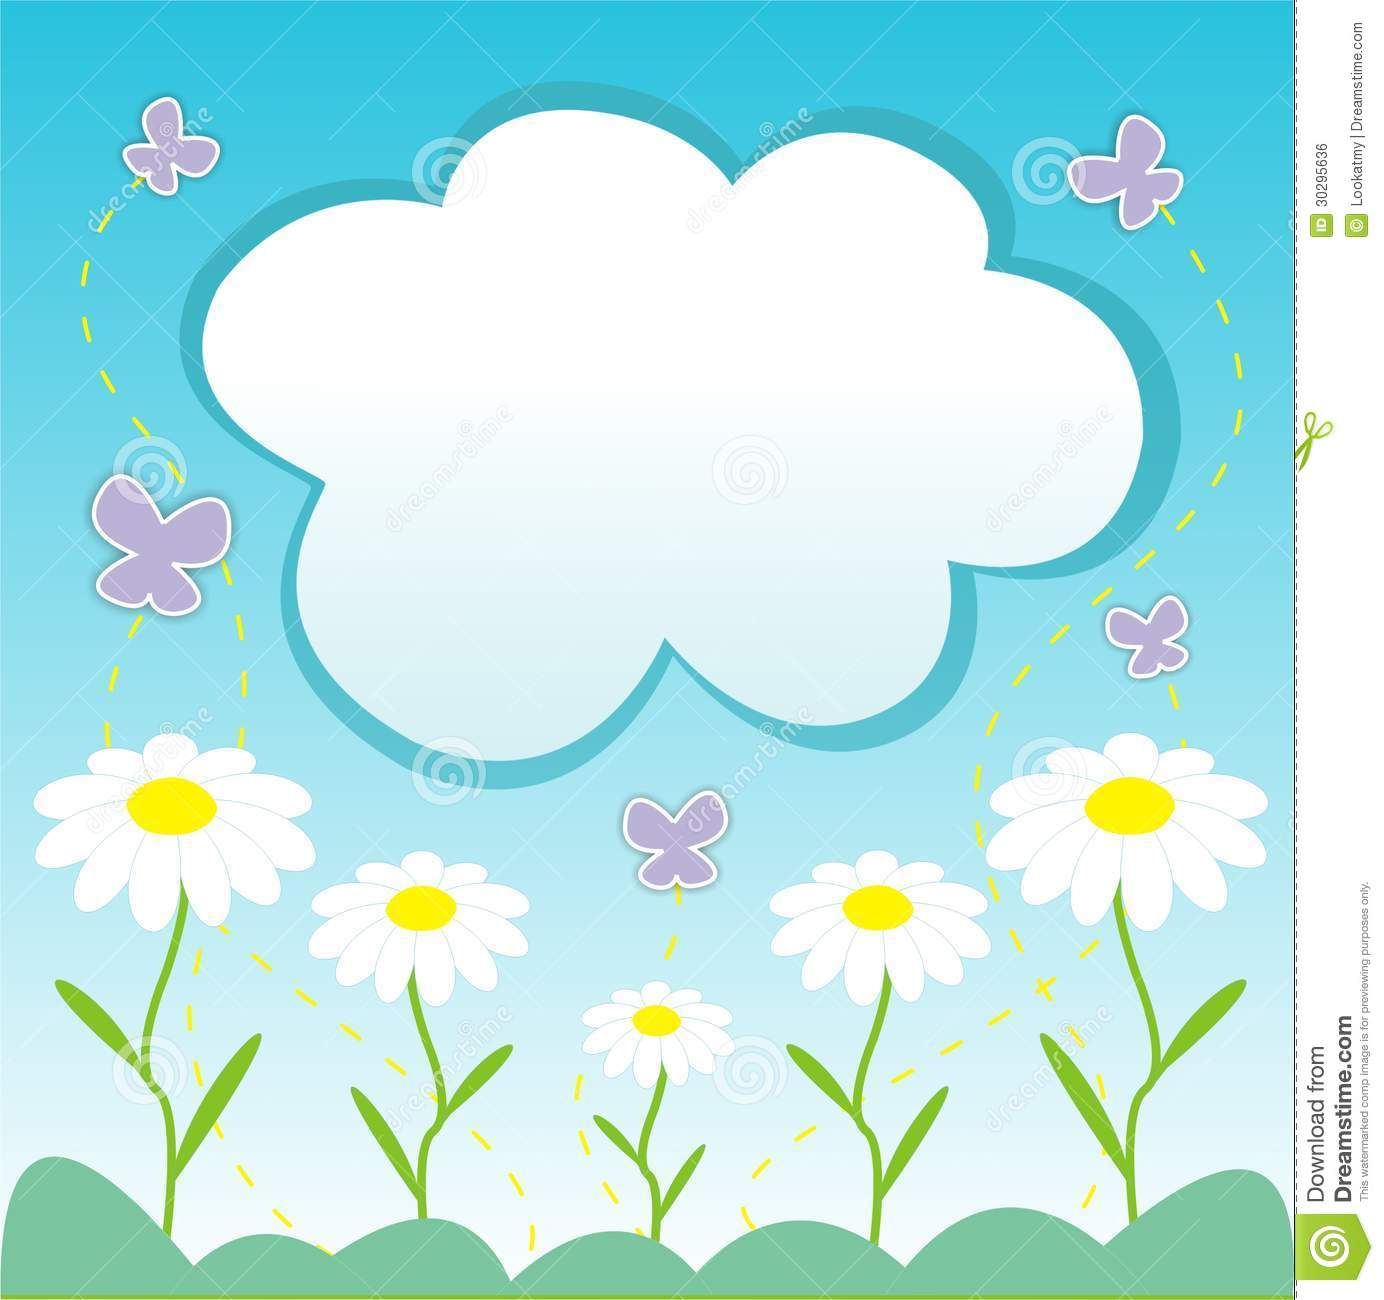 Vector light blue background with daises, cloud frame and butterflies.